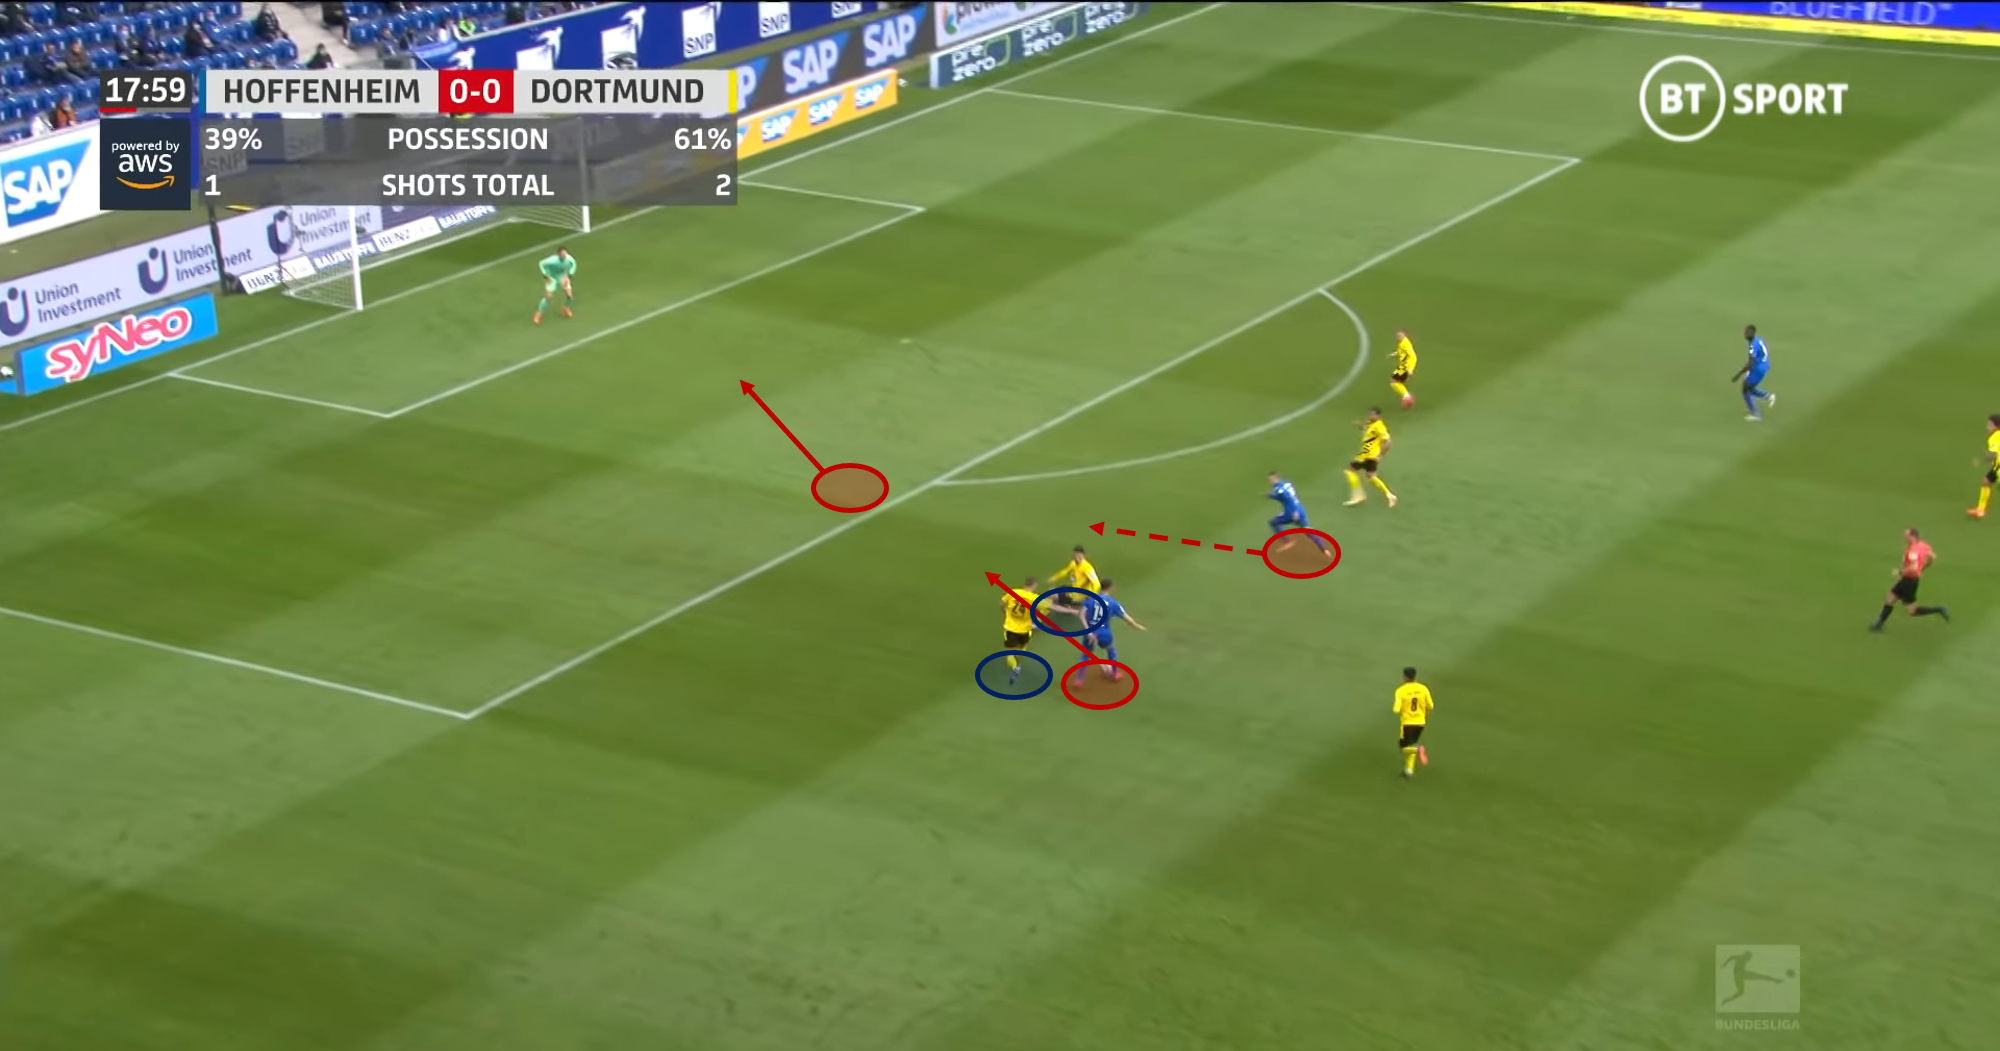 Bundesliga 2020/21: TSG Hoffenheim vs Borussia Dortmund – tactical analysis - tactics